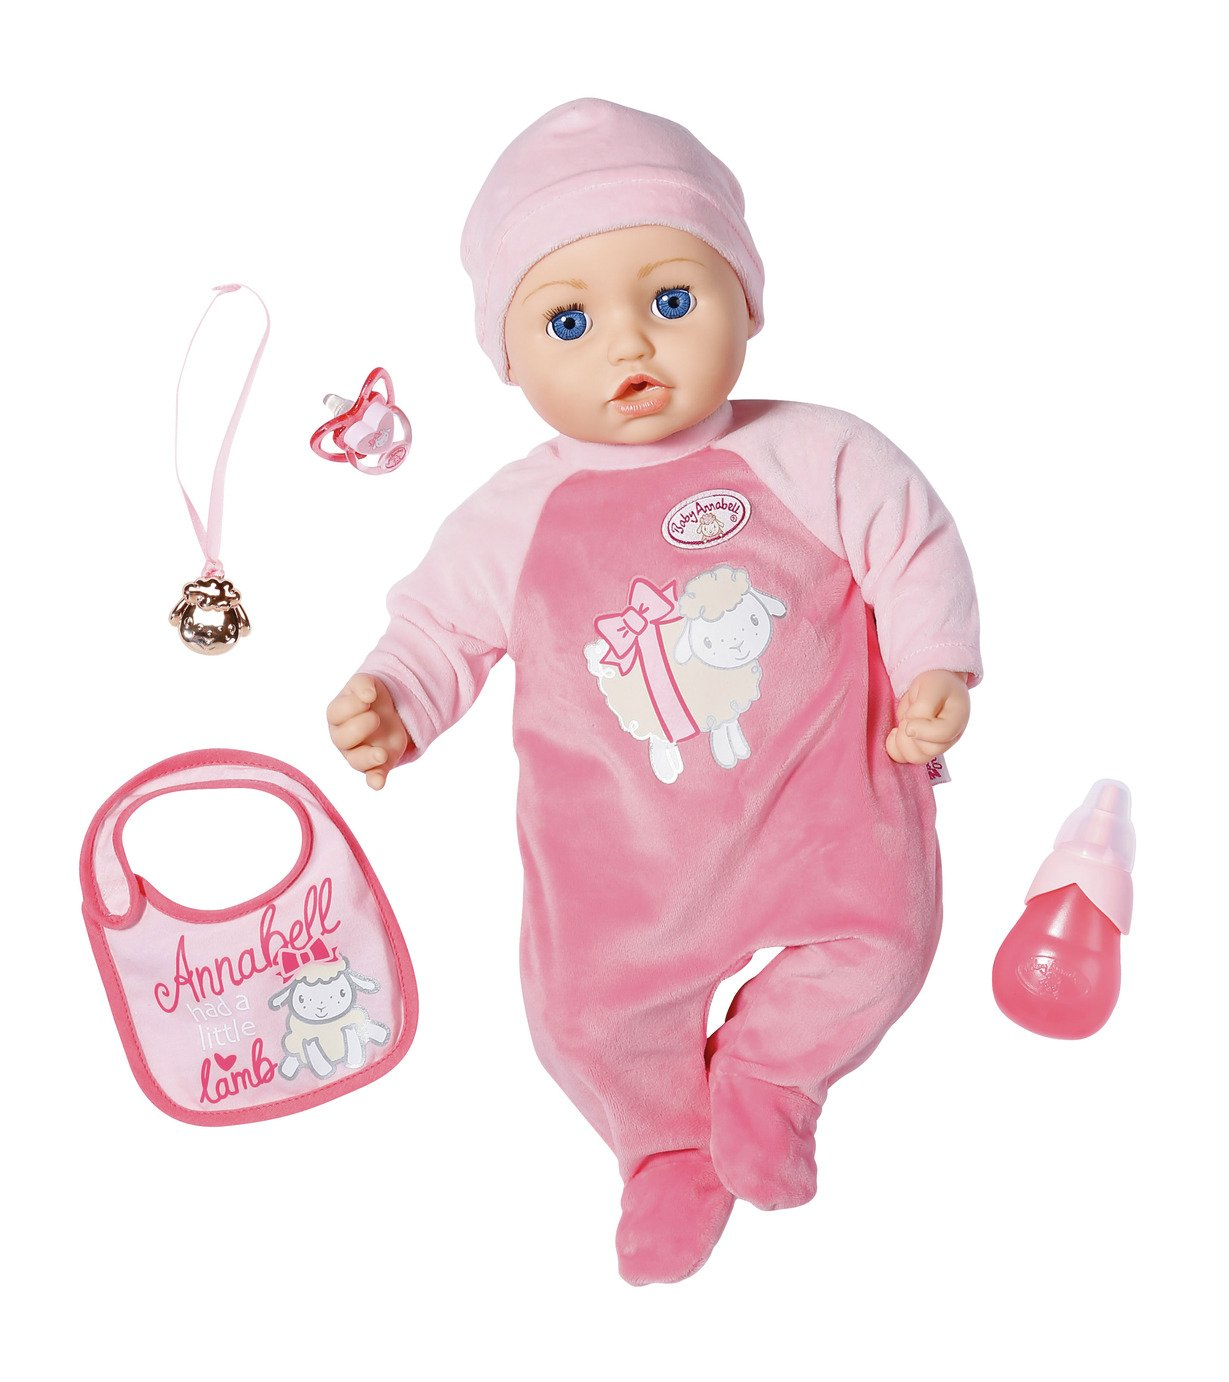 Image of Baby Annabell Doll.